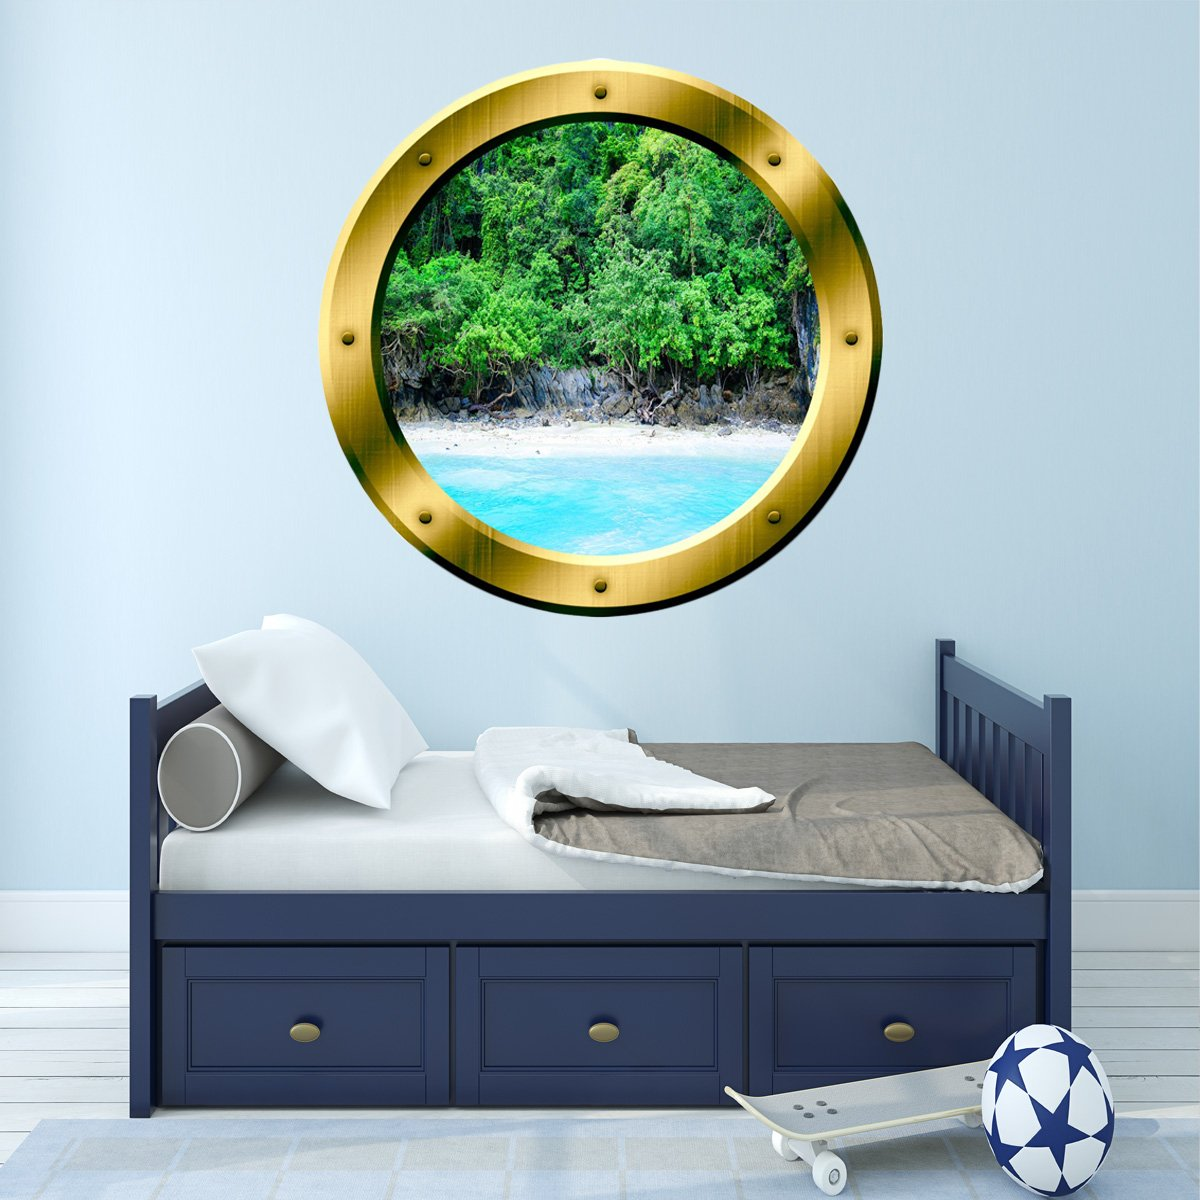 VWAQ Ocean Shoreline Silver Porthole Window View Peel and Stick Vinyl Wall Decal - GP15